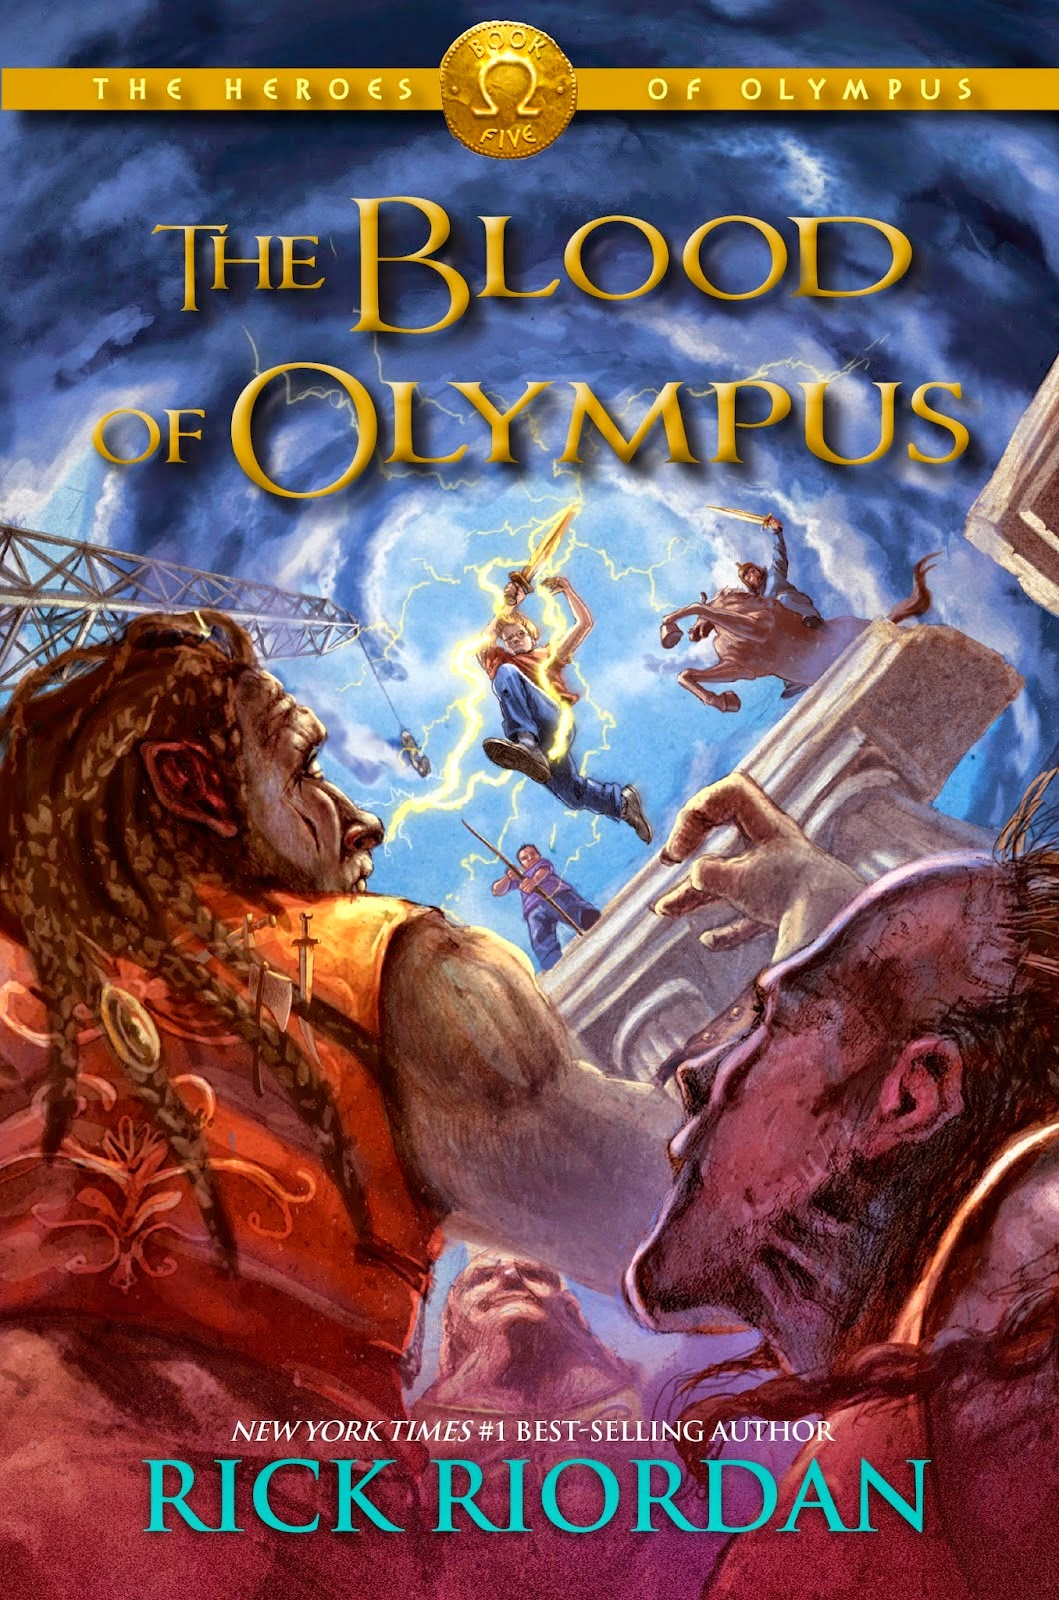 the blood of olympus, john rocco, tboo, by rick riordan, cover reveal large hd, the heroes of olympus